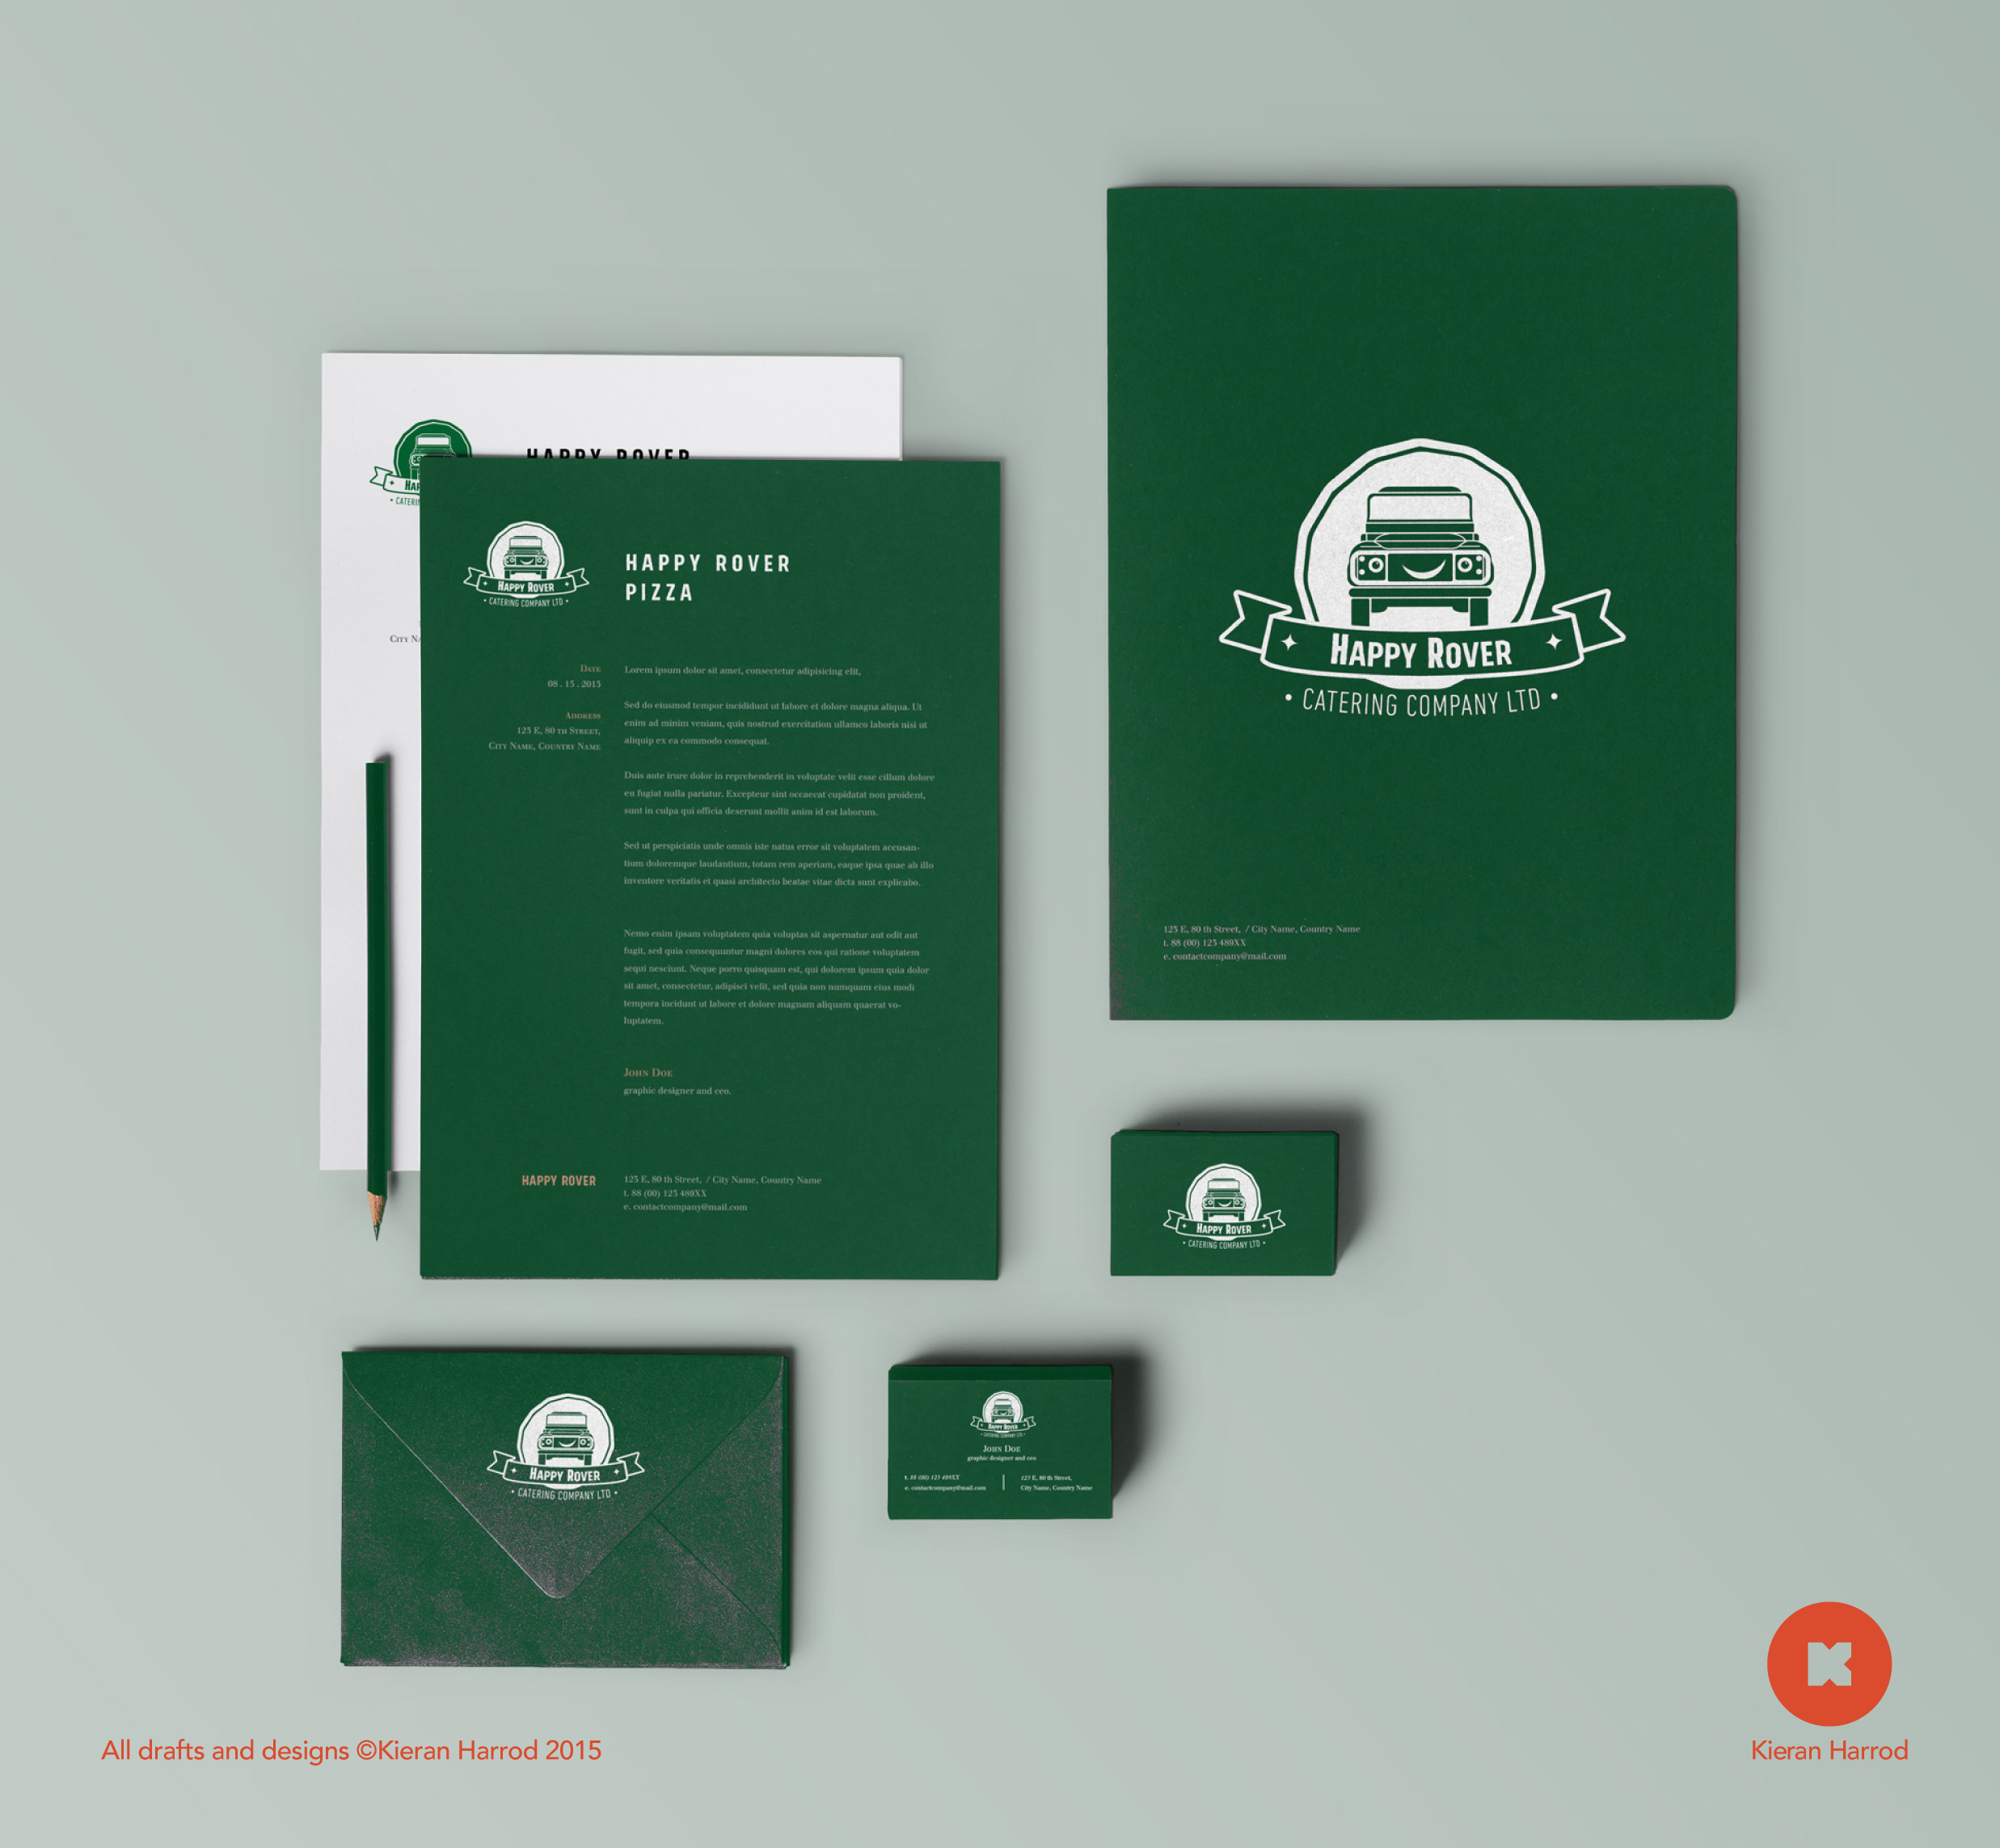 Happy Rover Pizza Stationary Mockup